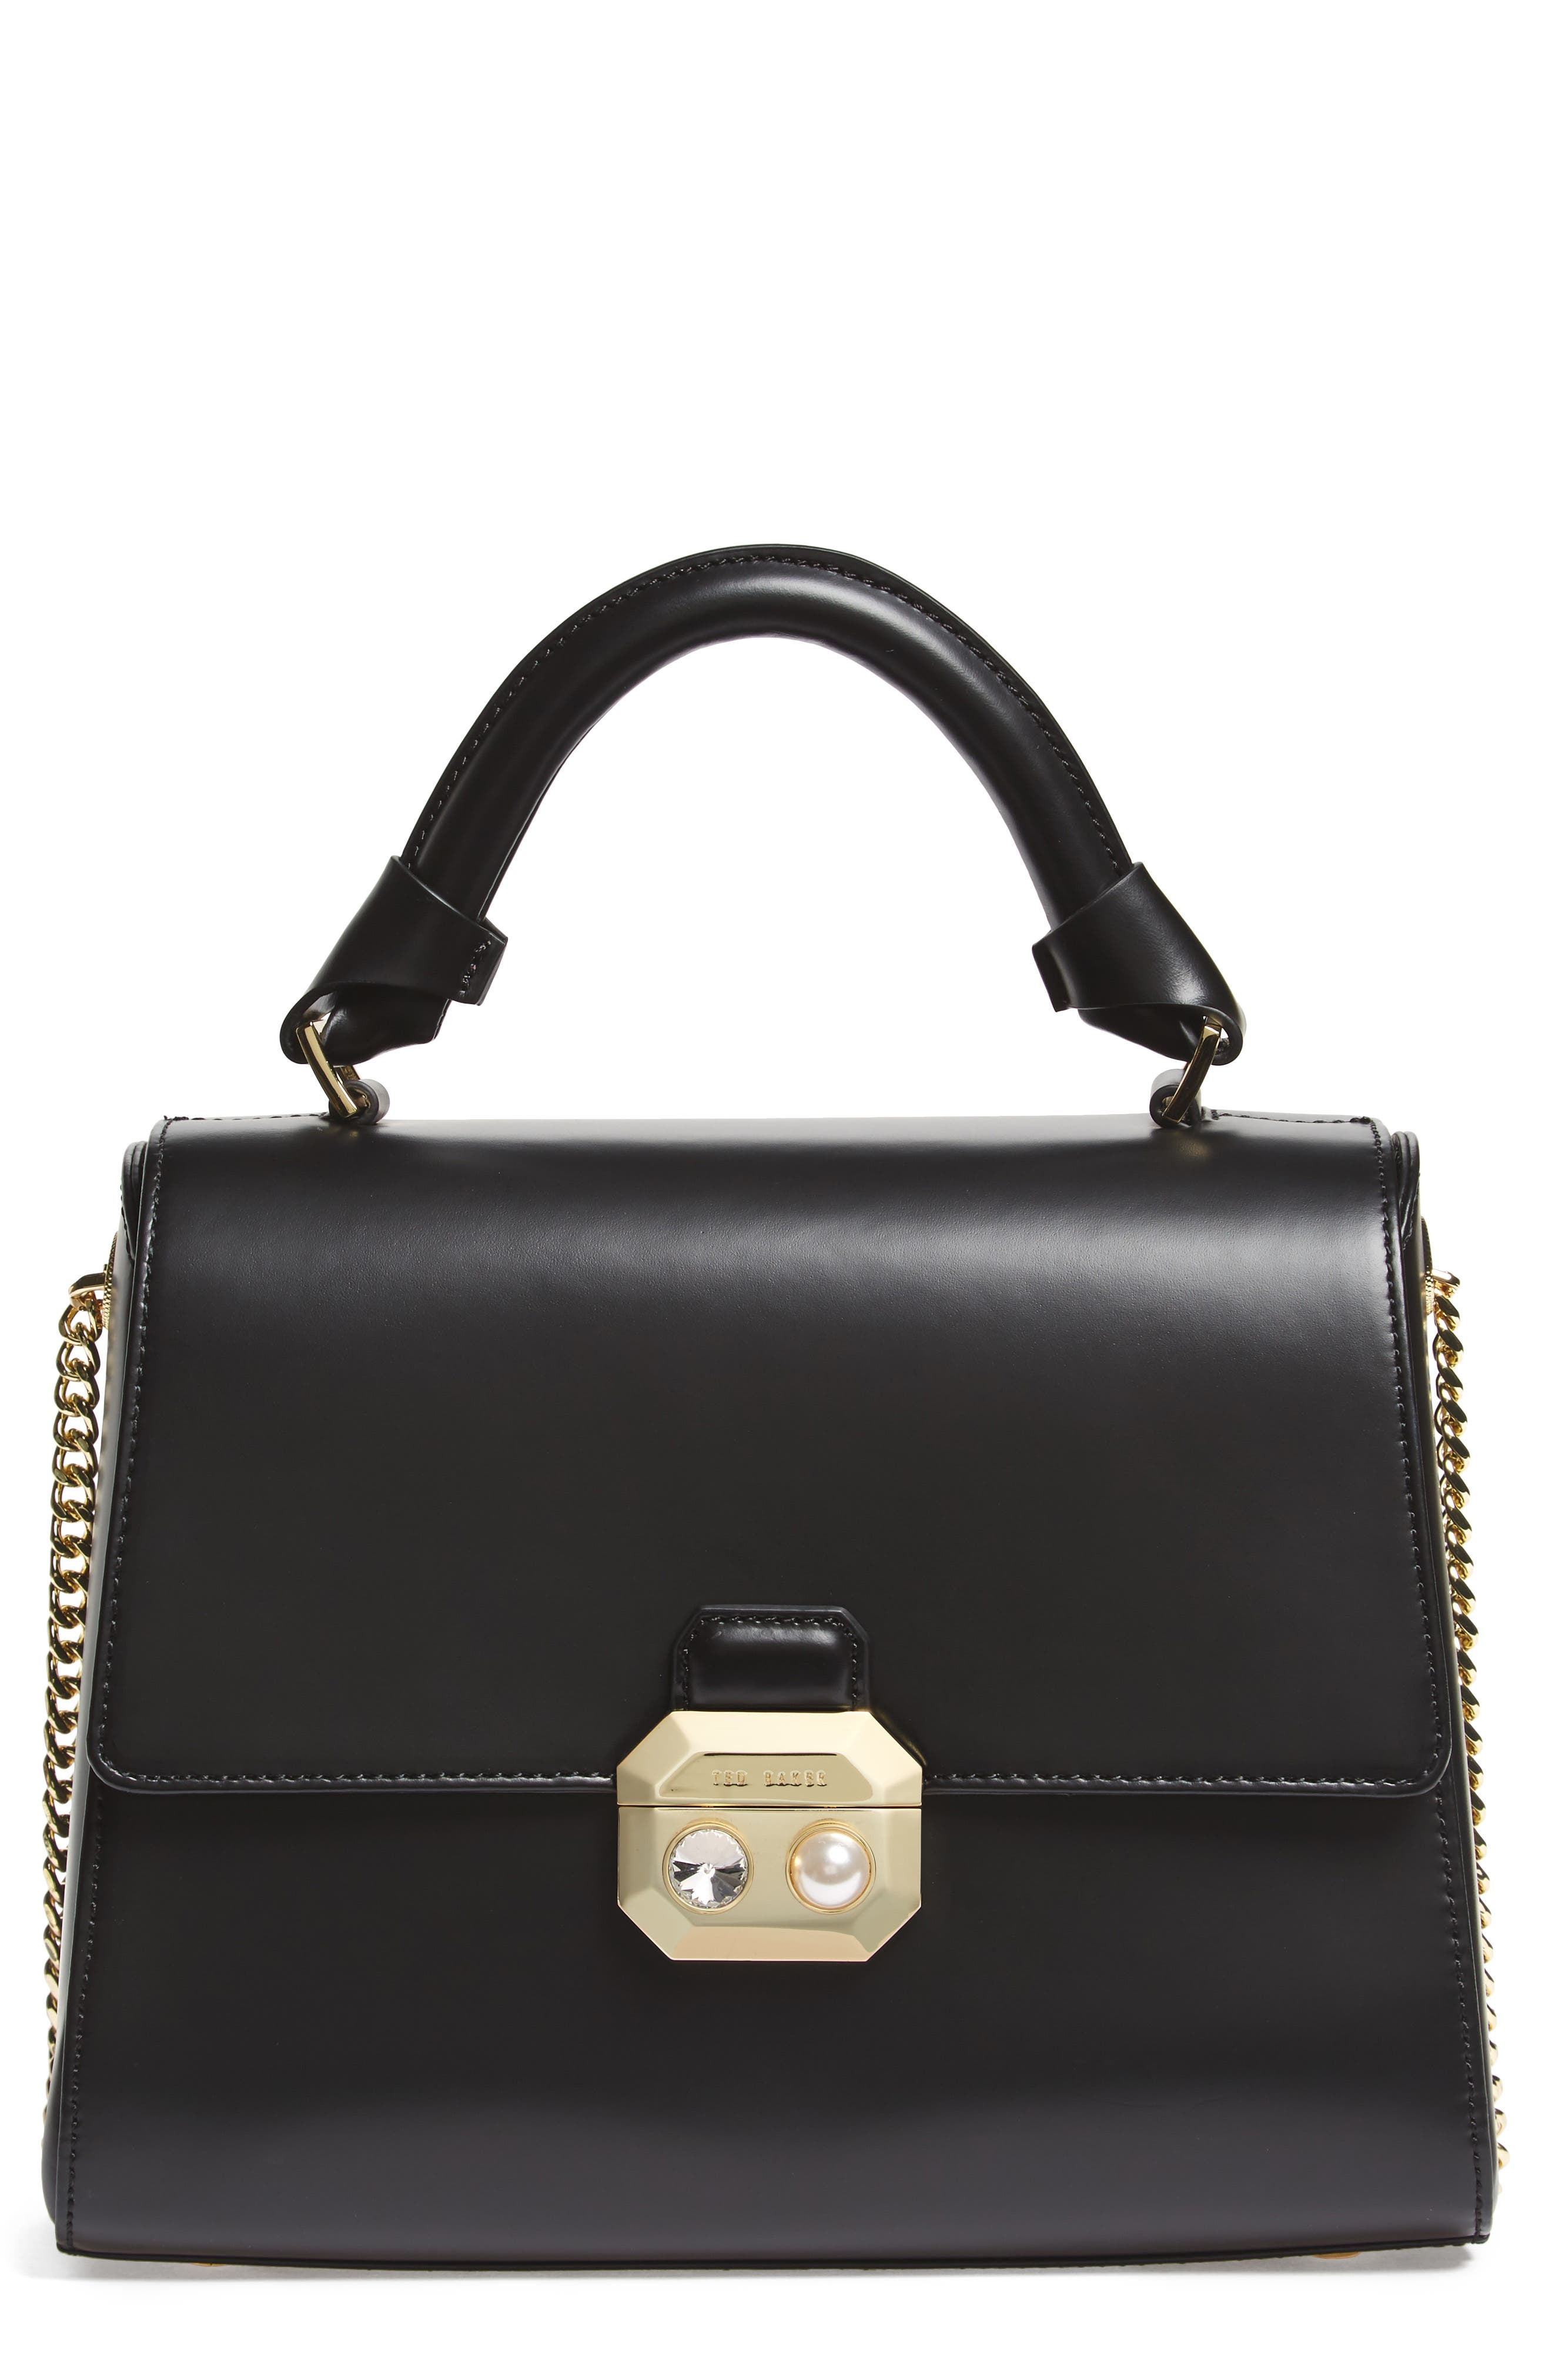 Main Image - Ted Baker London Leather Top Handle Satchel